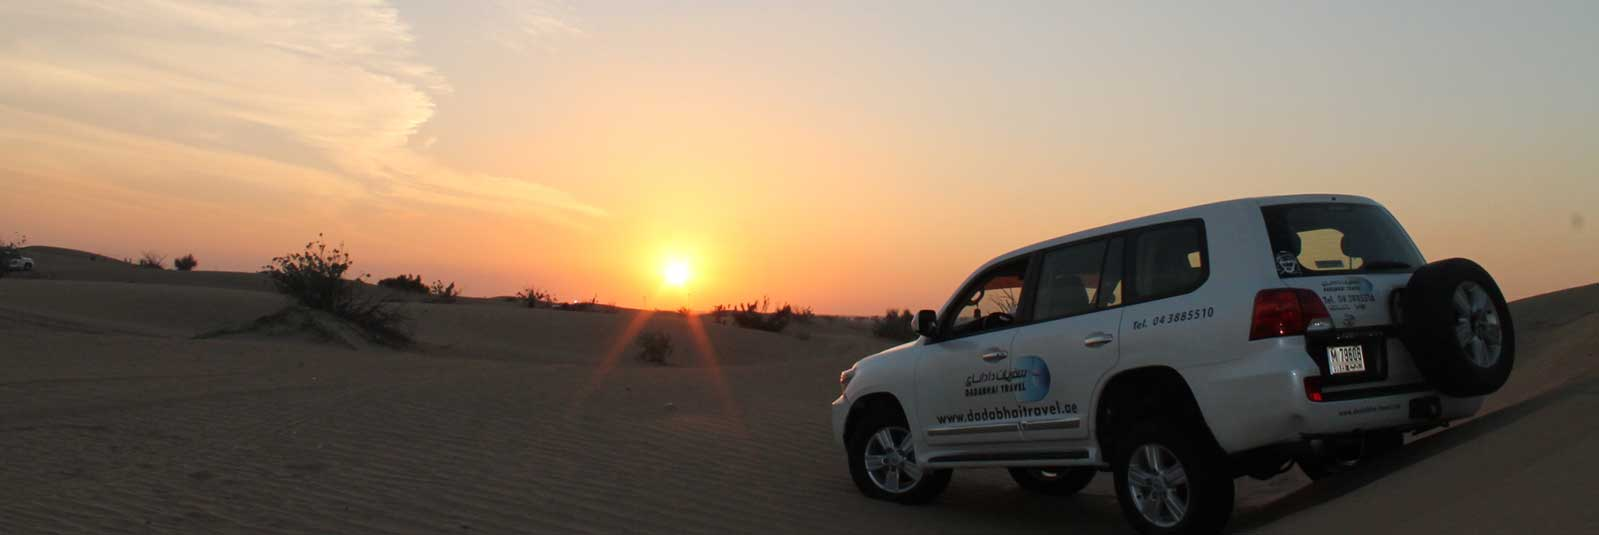 sunset-desert-safari.jpg